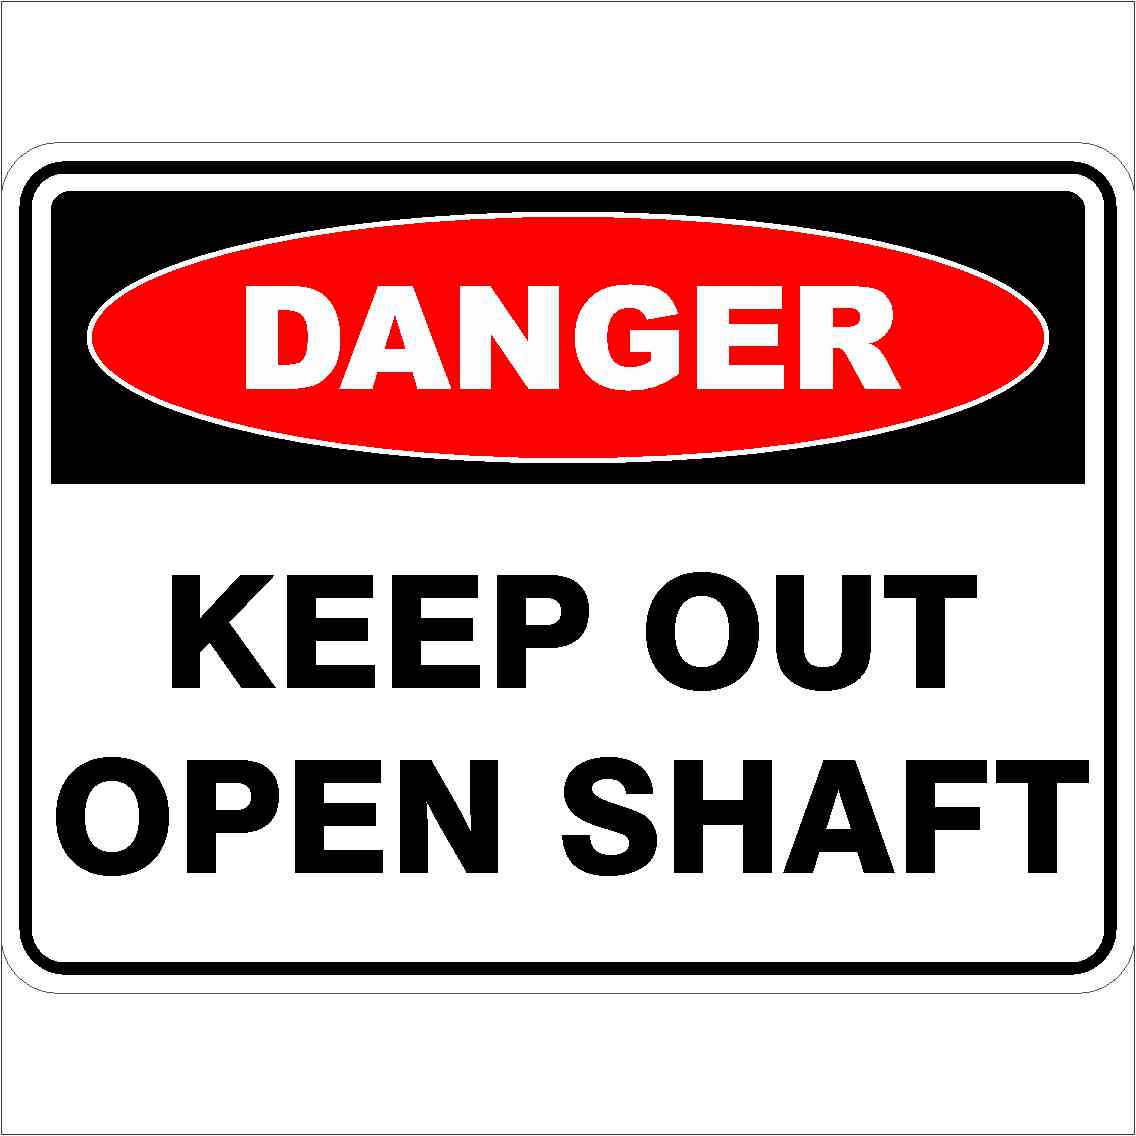 Danger Signs KEEP OUT OPEN SHAFT